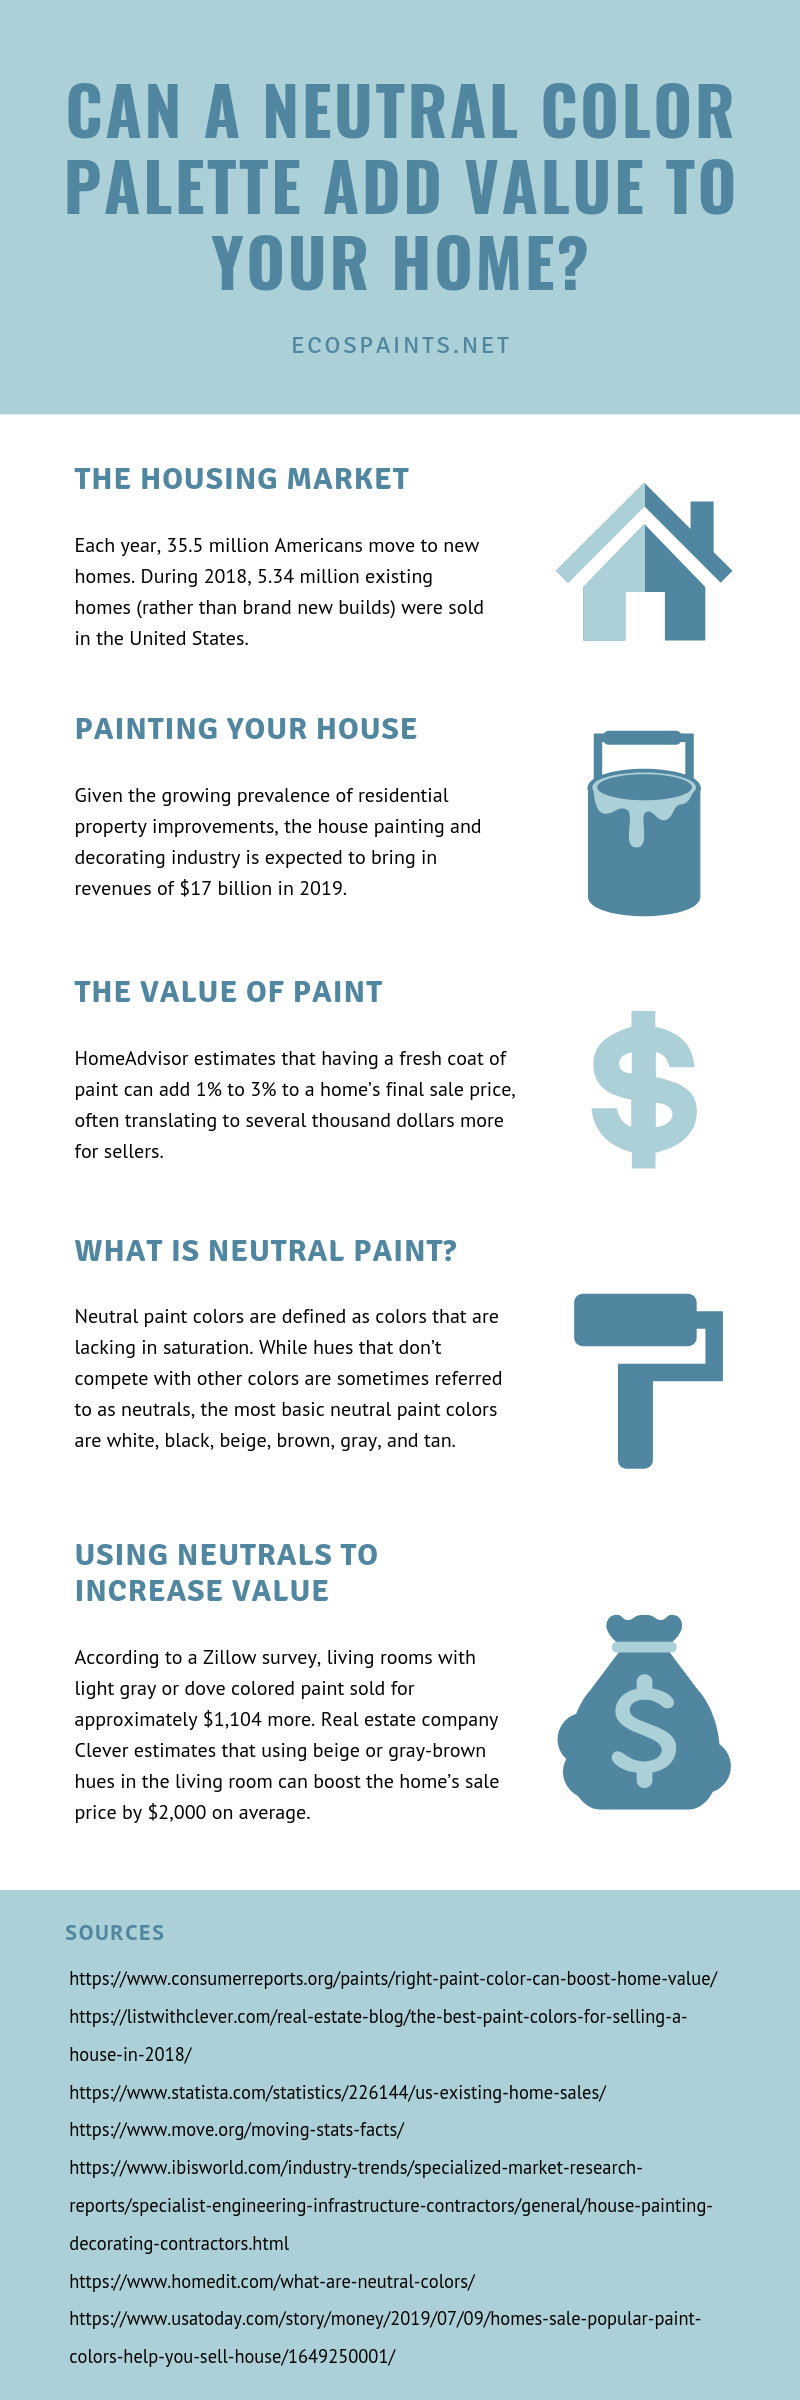 Can A Neutral Color Palette Add Value To Your Home